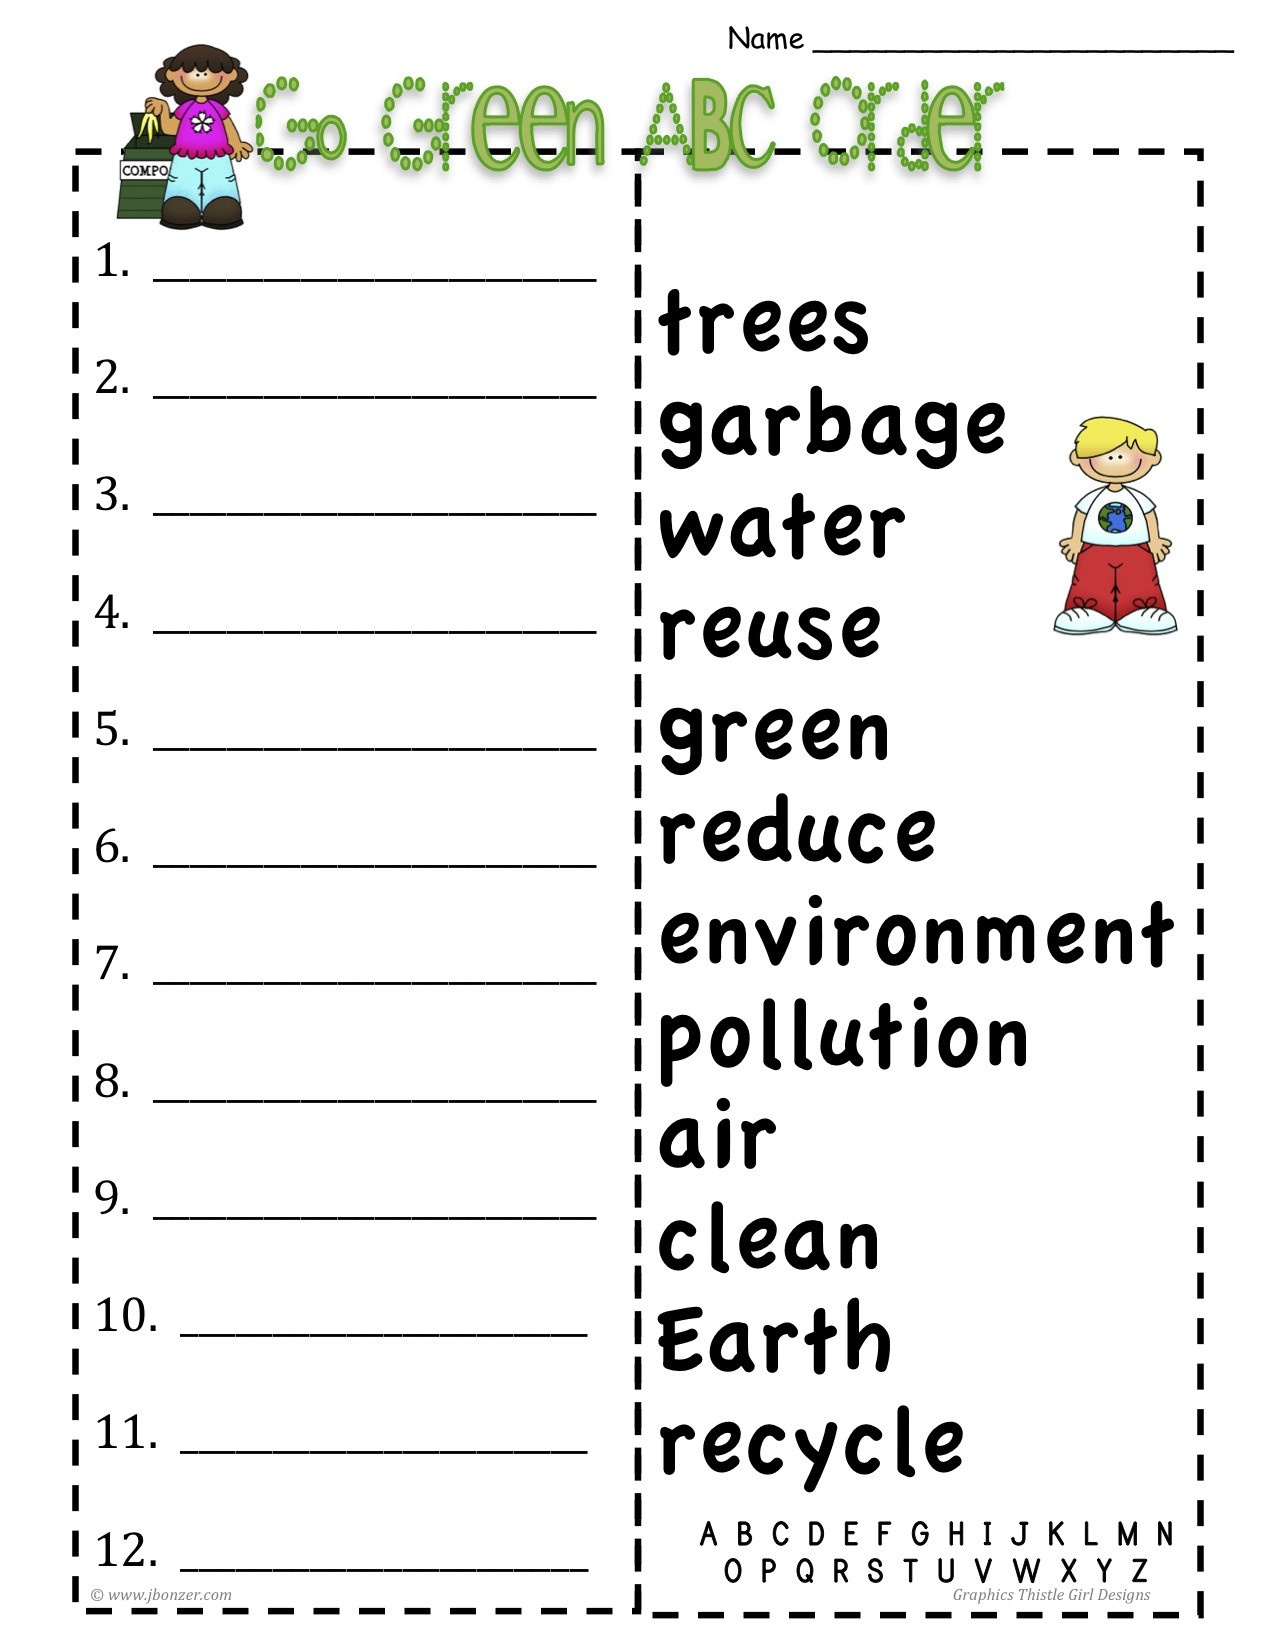 Printable Abc order Worksheets Alphabetical order Homework School Tagline Here